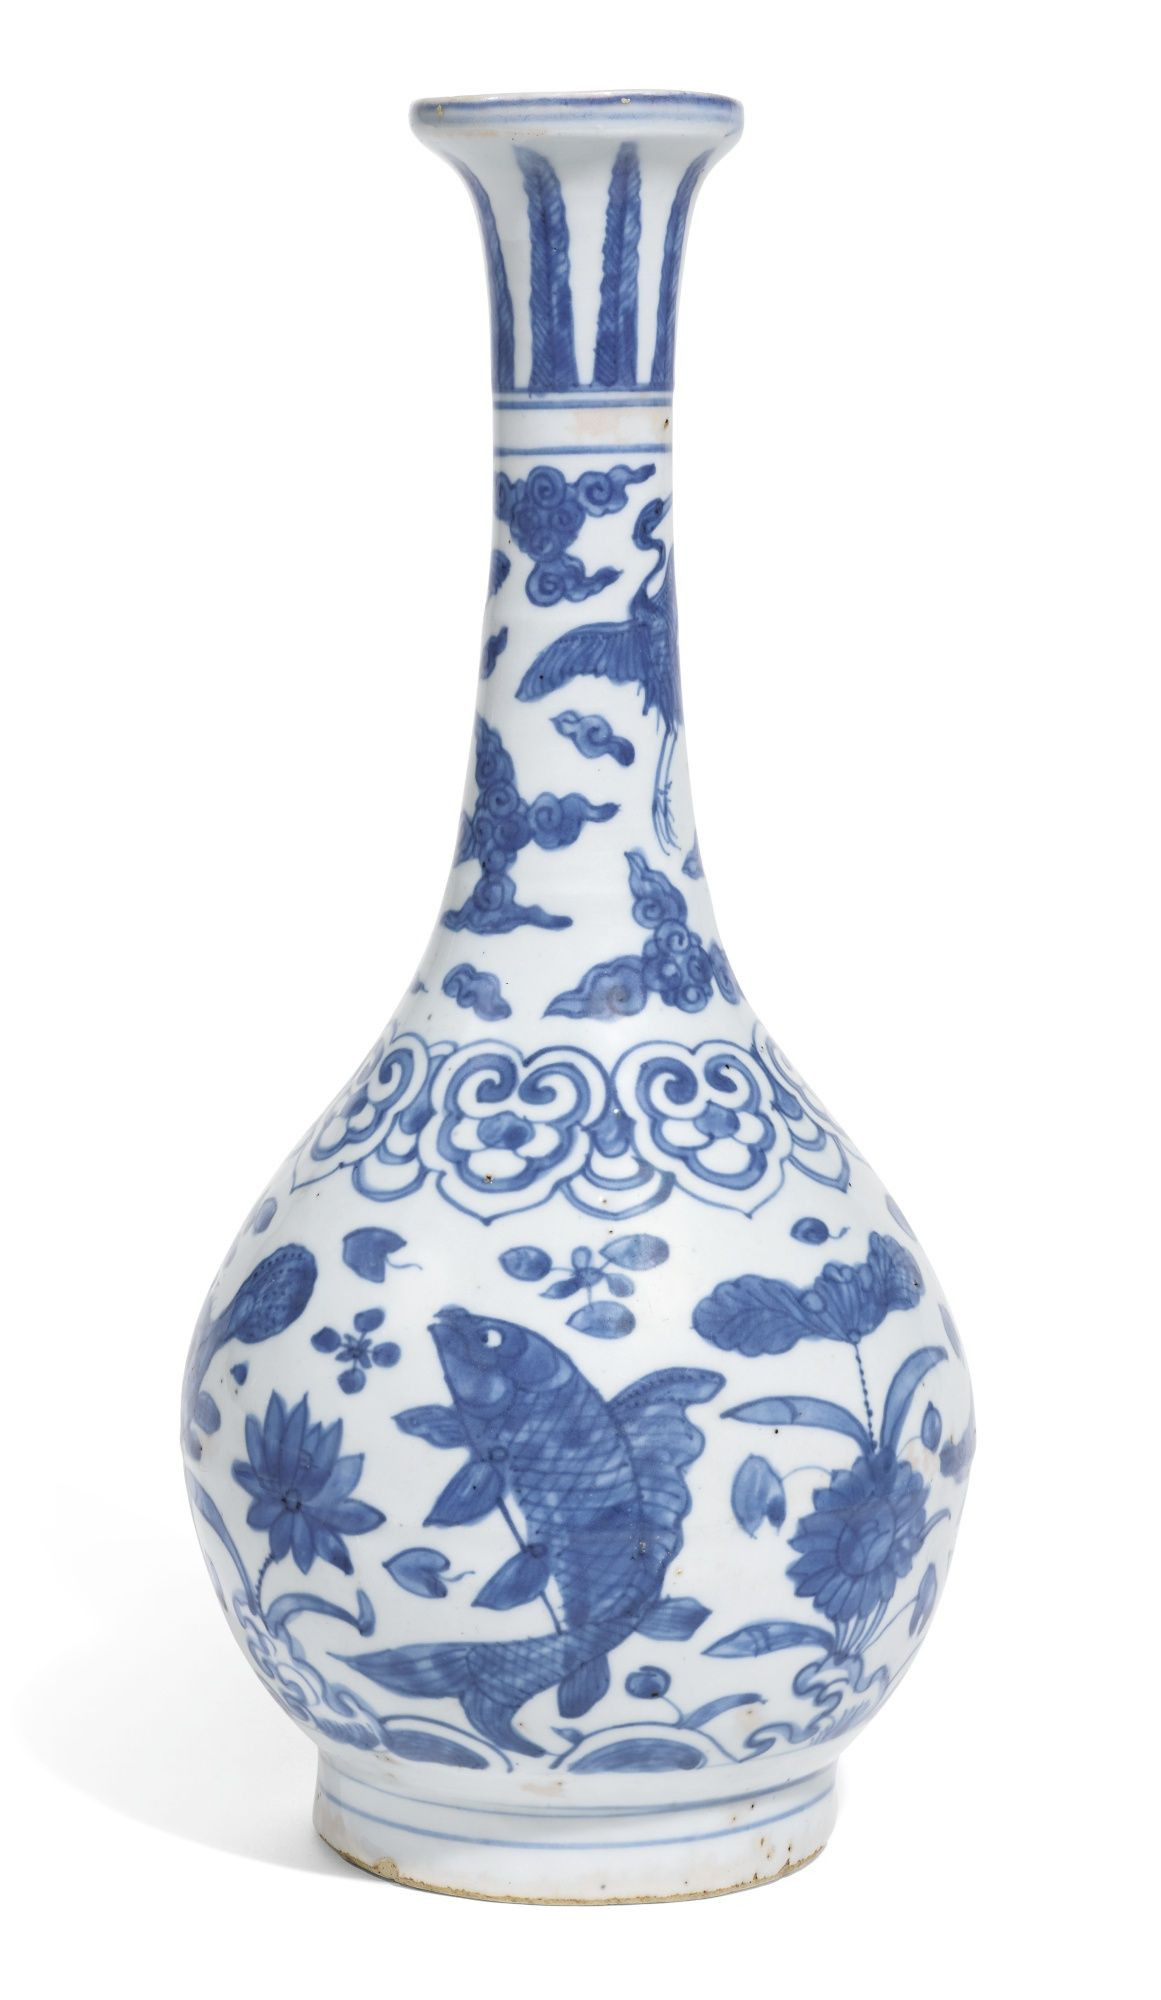 Asian Porcelain Vases Of A Blue and White Bottle Vase Ming Dynasty Jiajing Wanli Period with Regard to A Blue and White Bottle Vase Ming Dynasty Jiajing Wanli Period